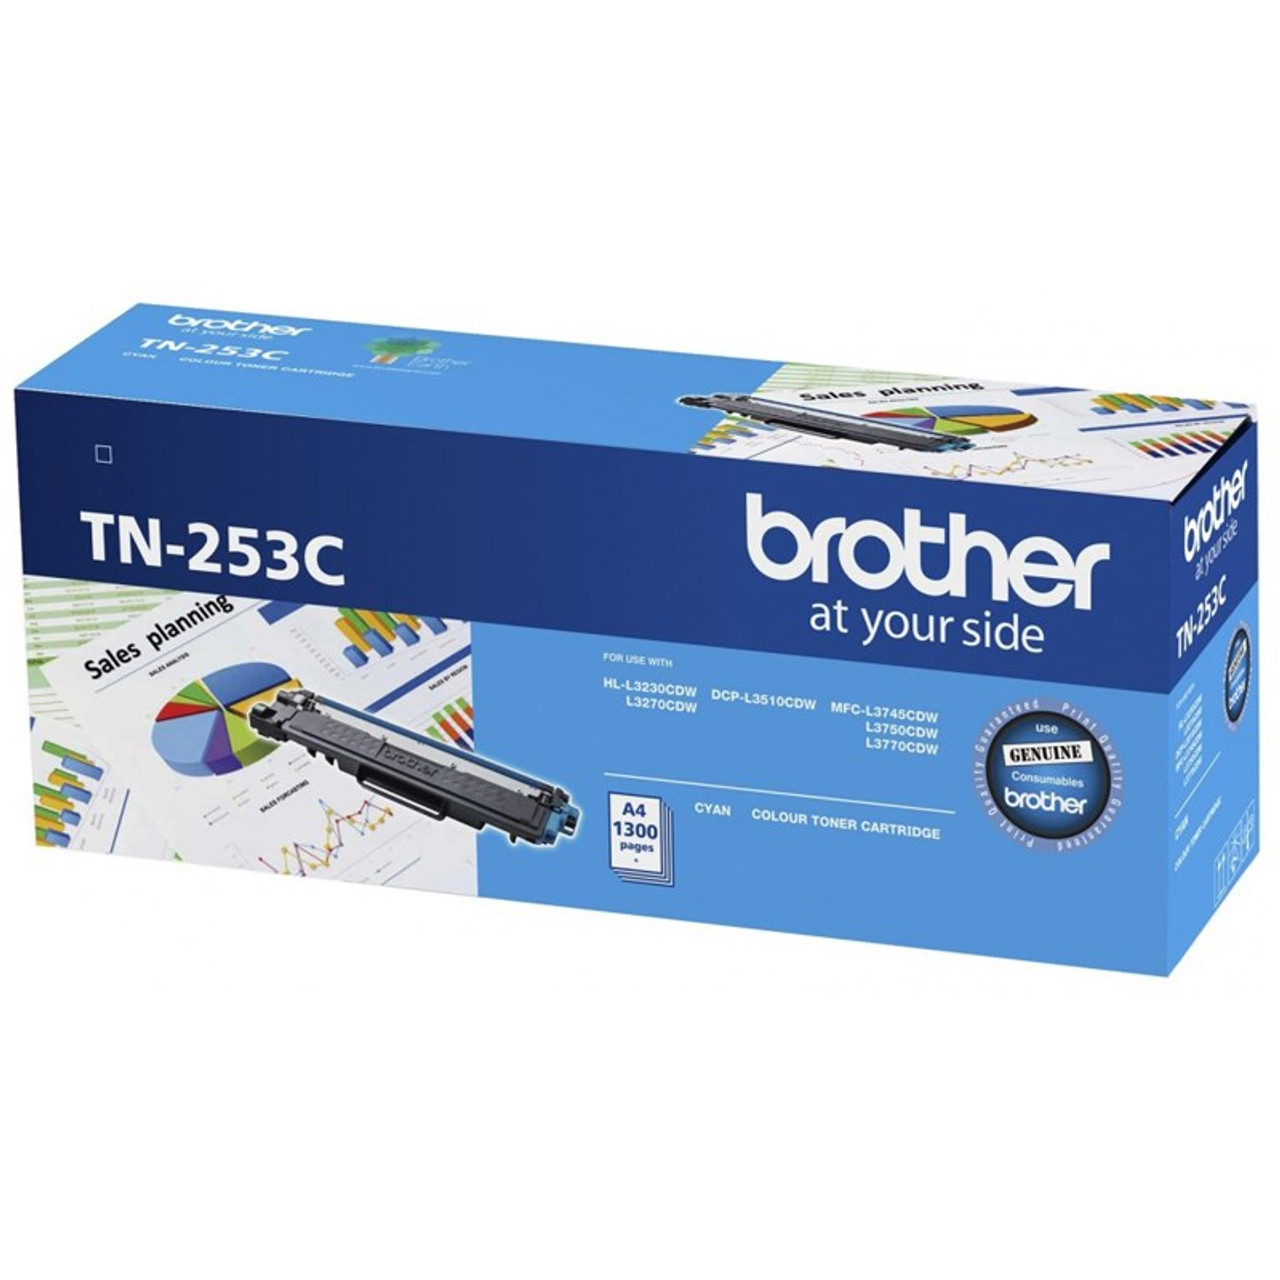 Image for Brother TN-253C Cyan Toner Cartridge CX Computer Superstore